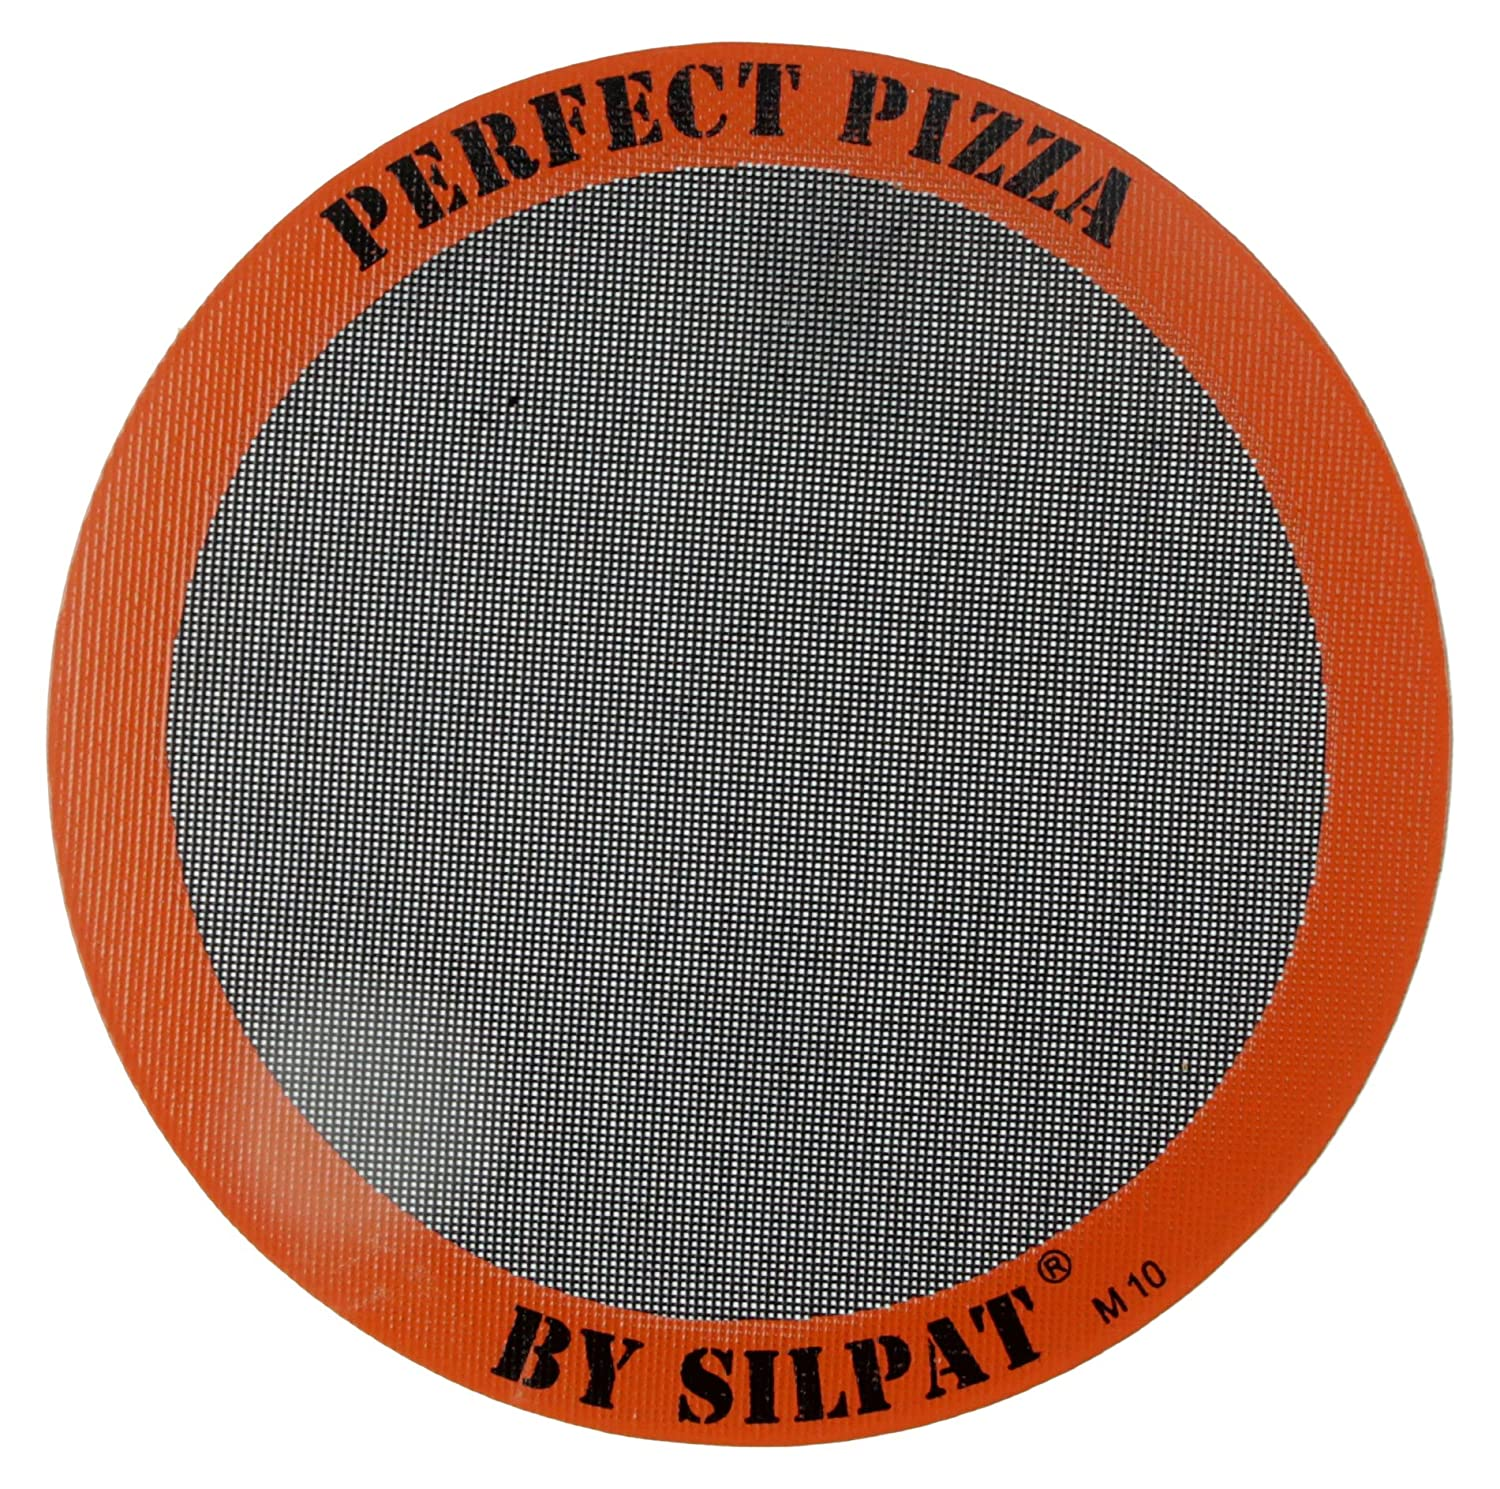 "Silpat Perfect Pizza Mat Silicone Baking, 12"", Orange"